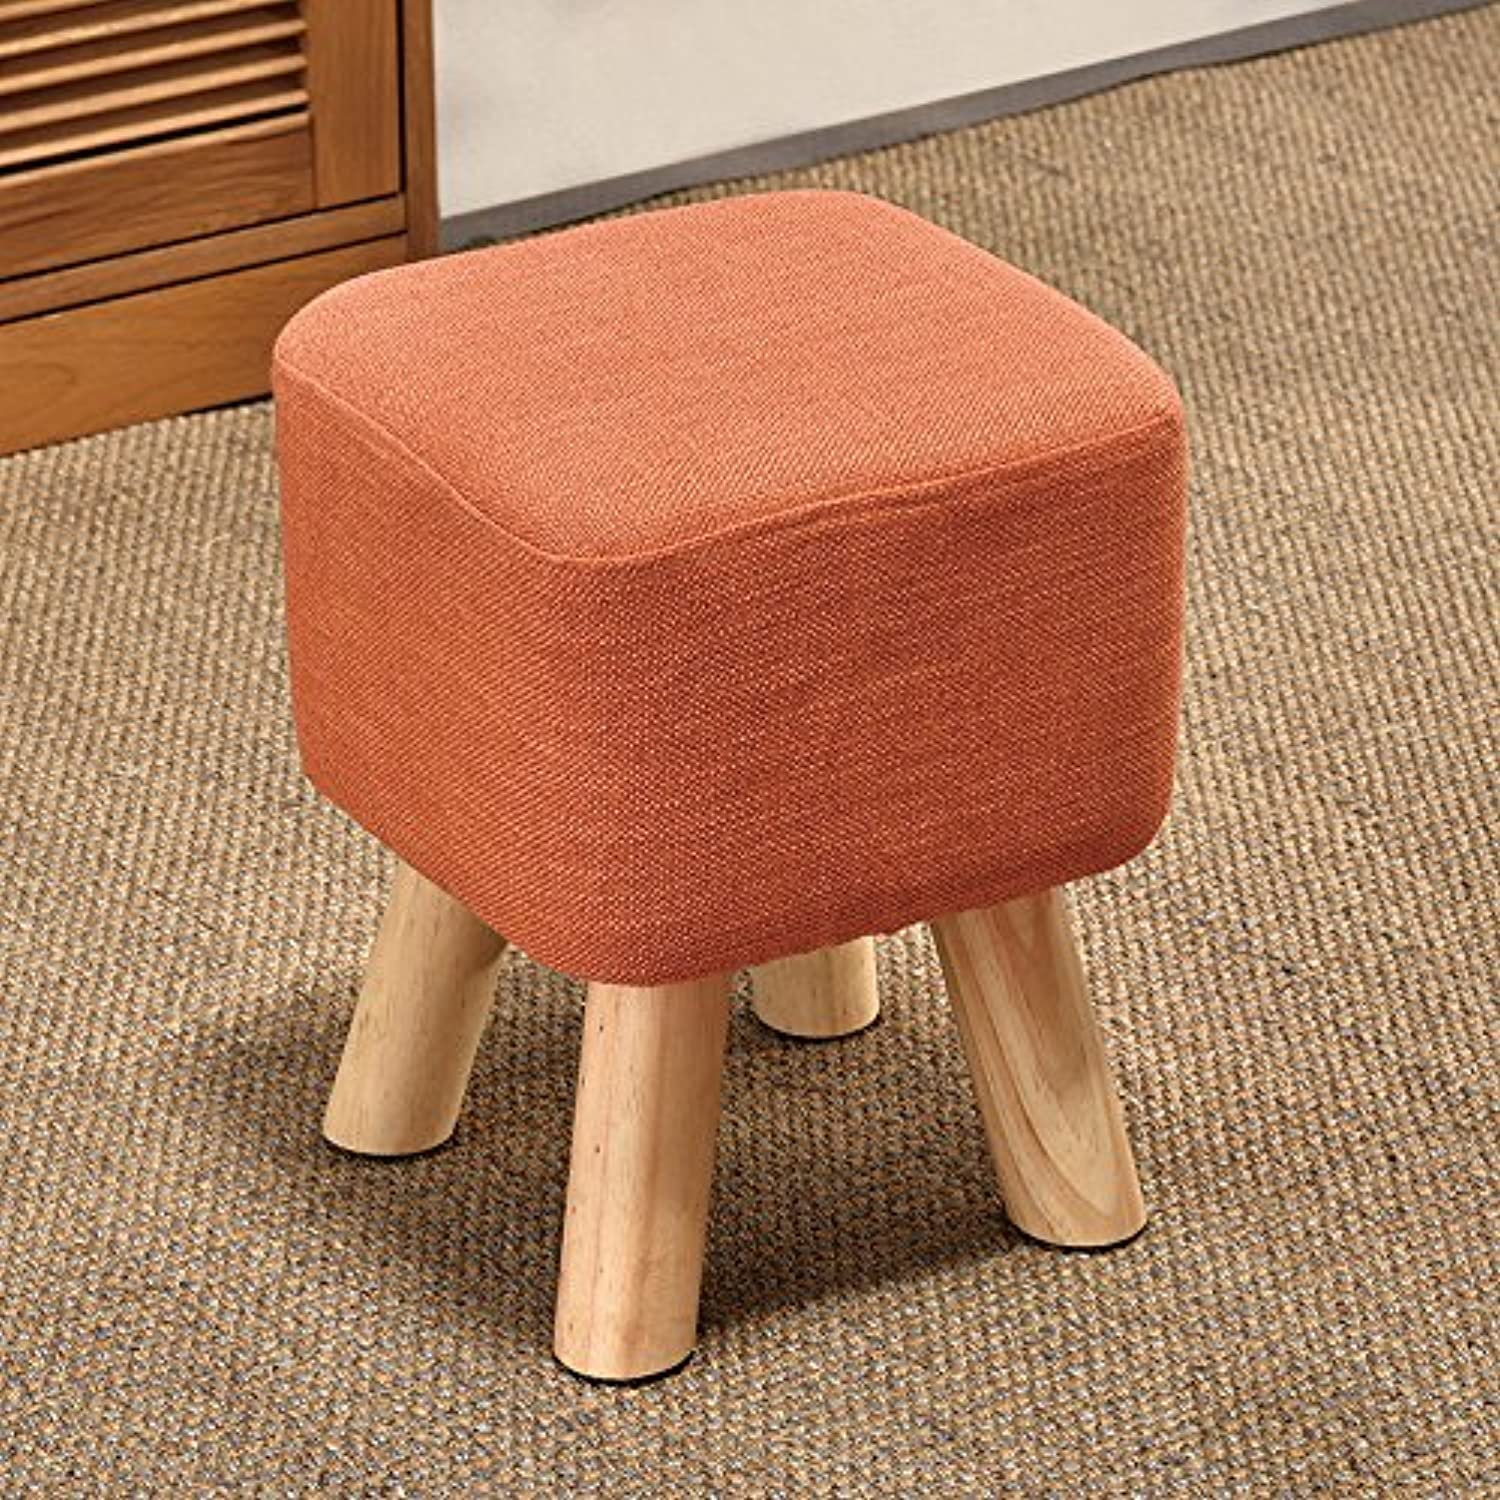 Dana Carrie The High stool Wooden stool Creative Living in Other shoes is Stylish Cloth Sofas stools Benches, orange